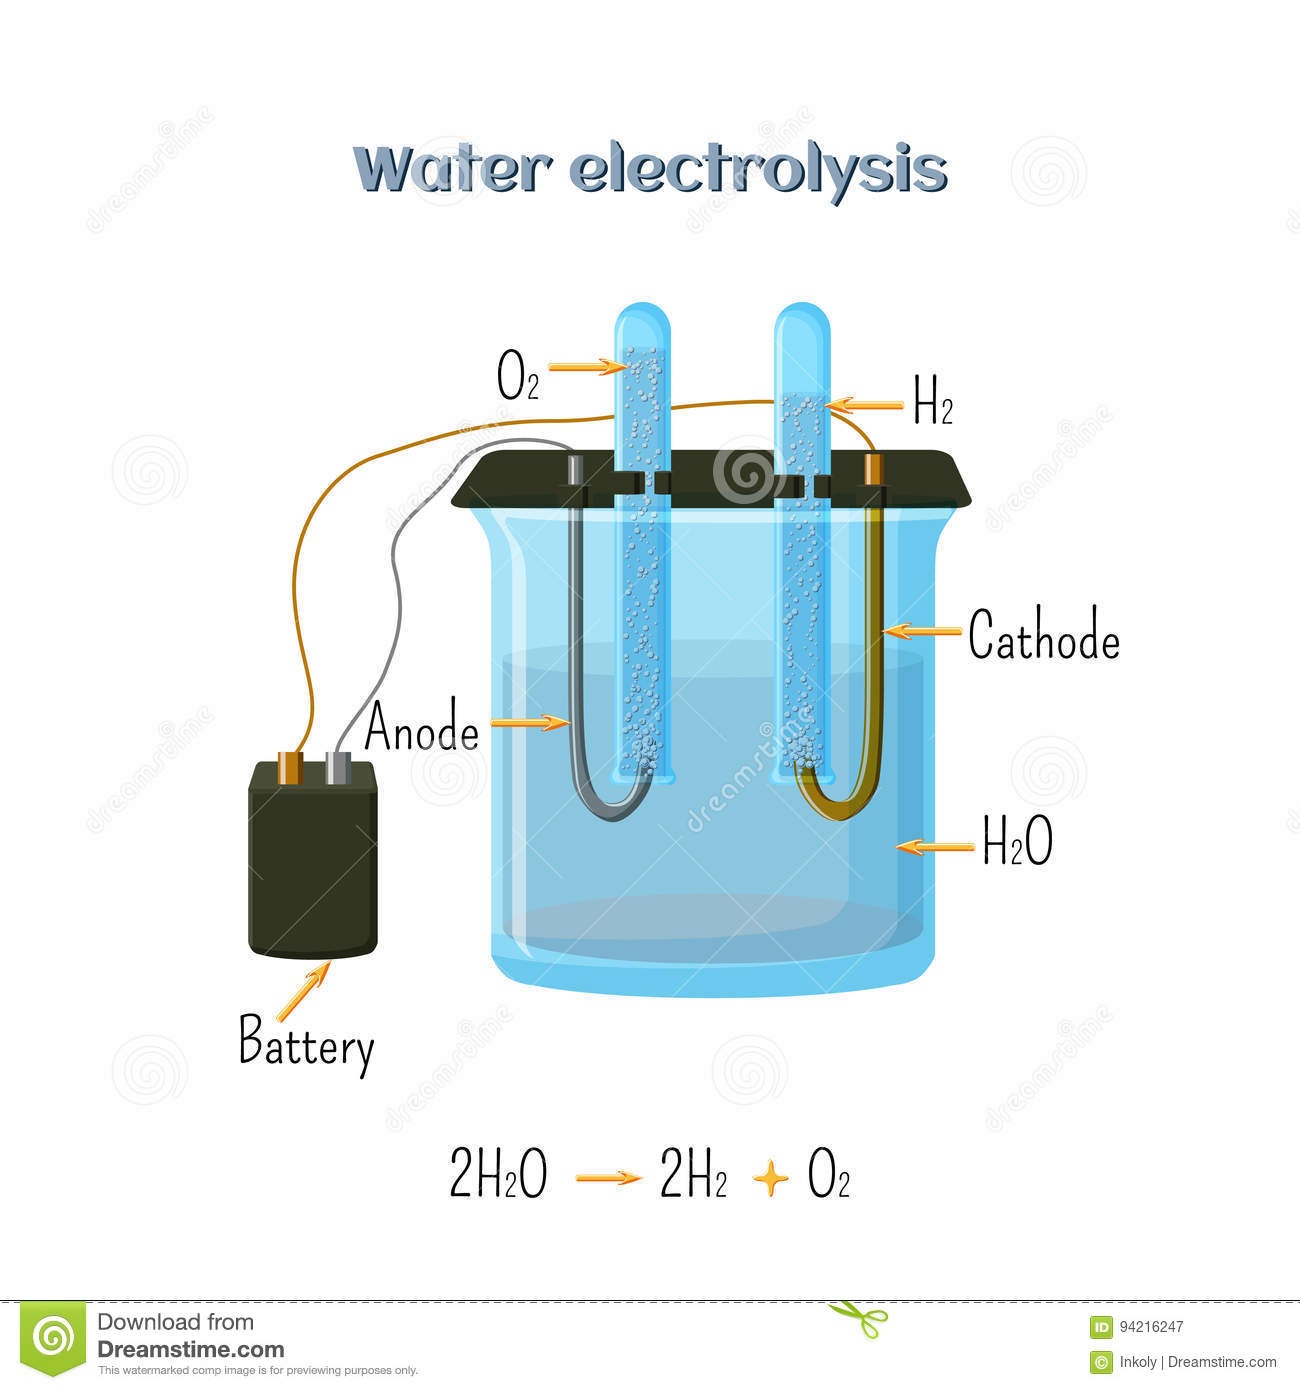 Water electrolysis diagram stock vector illustration of compound water electrolysis diagram educational chemistry for kids source of hydrogen alternative fuel cartoon vector illustration in flat style ccuart Gallery